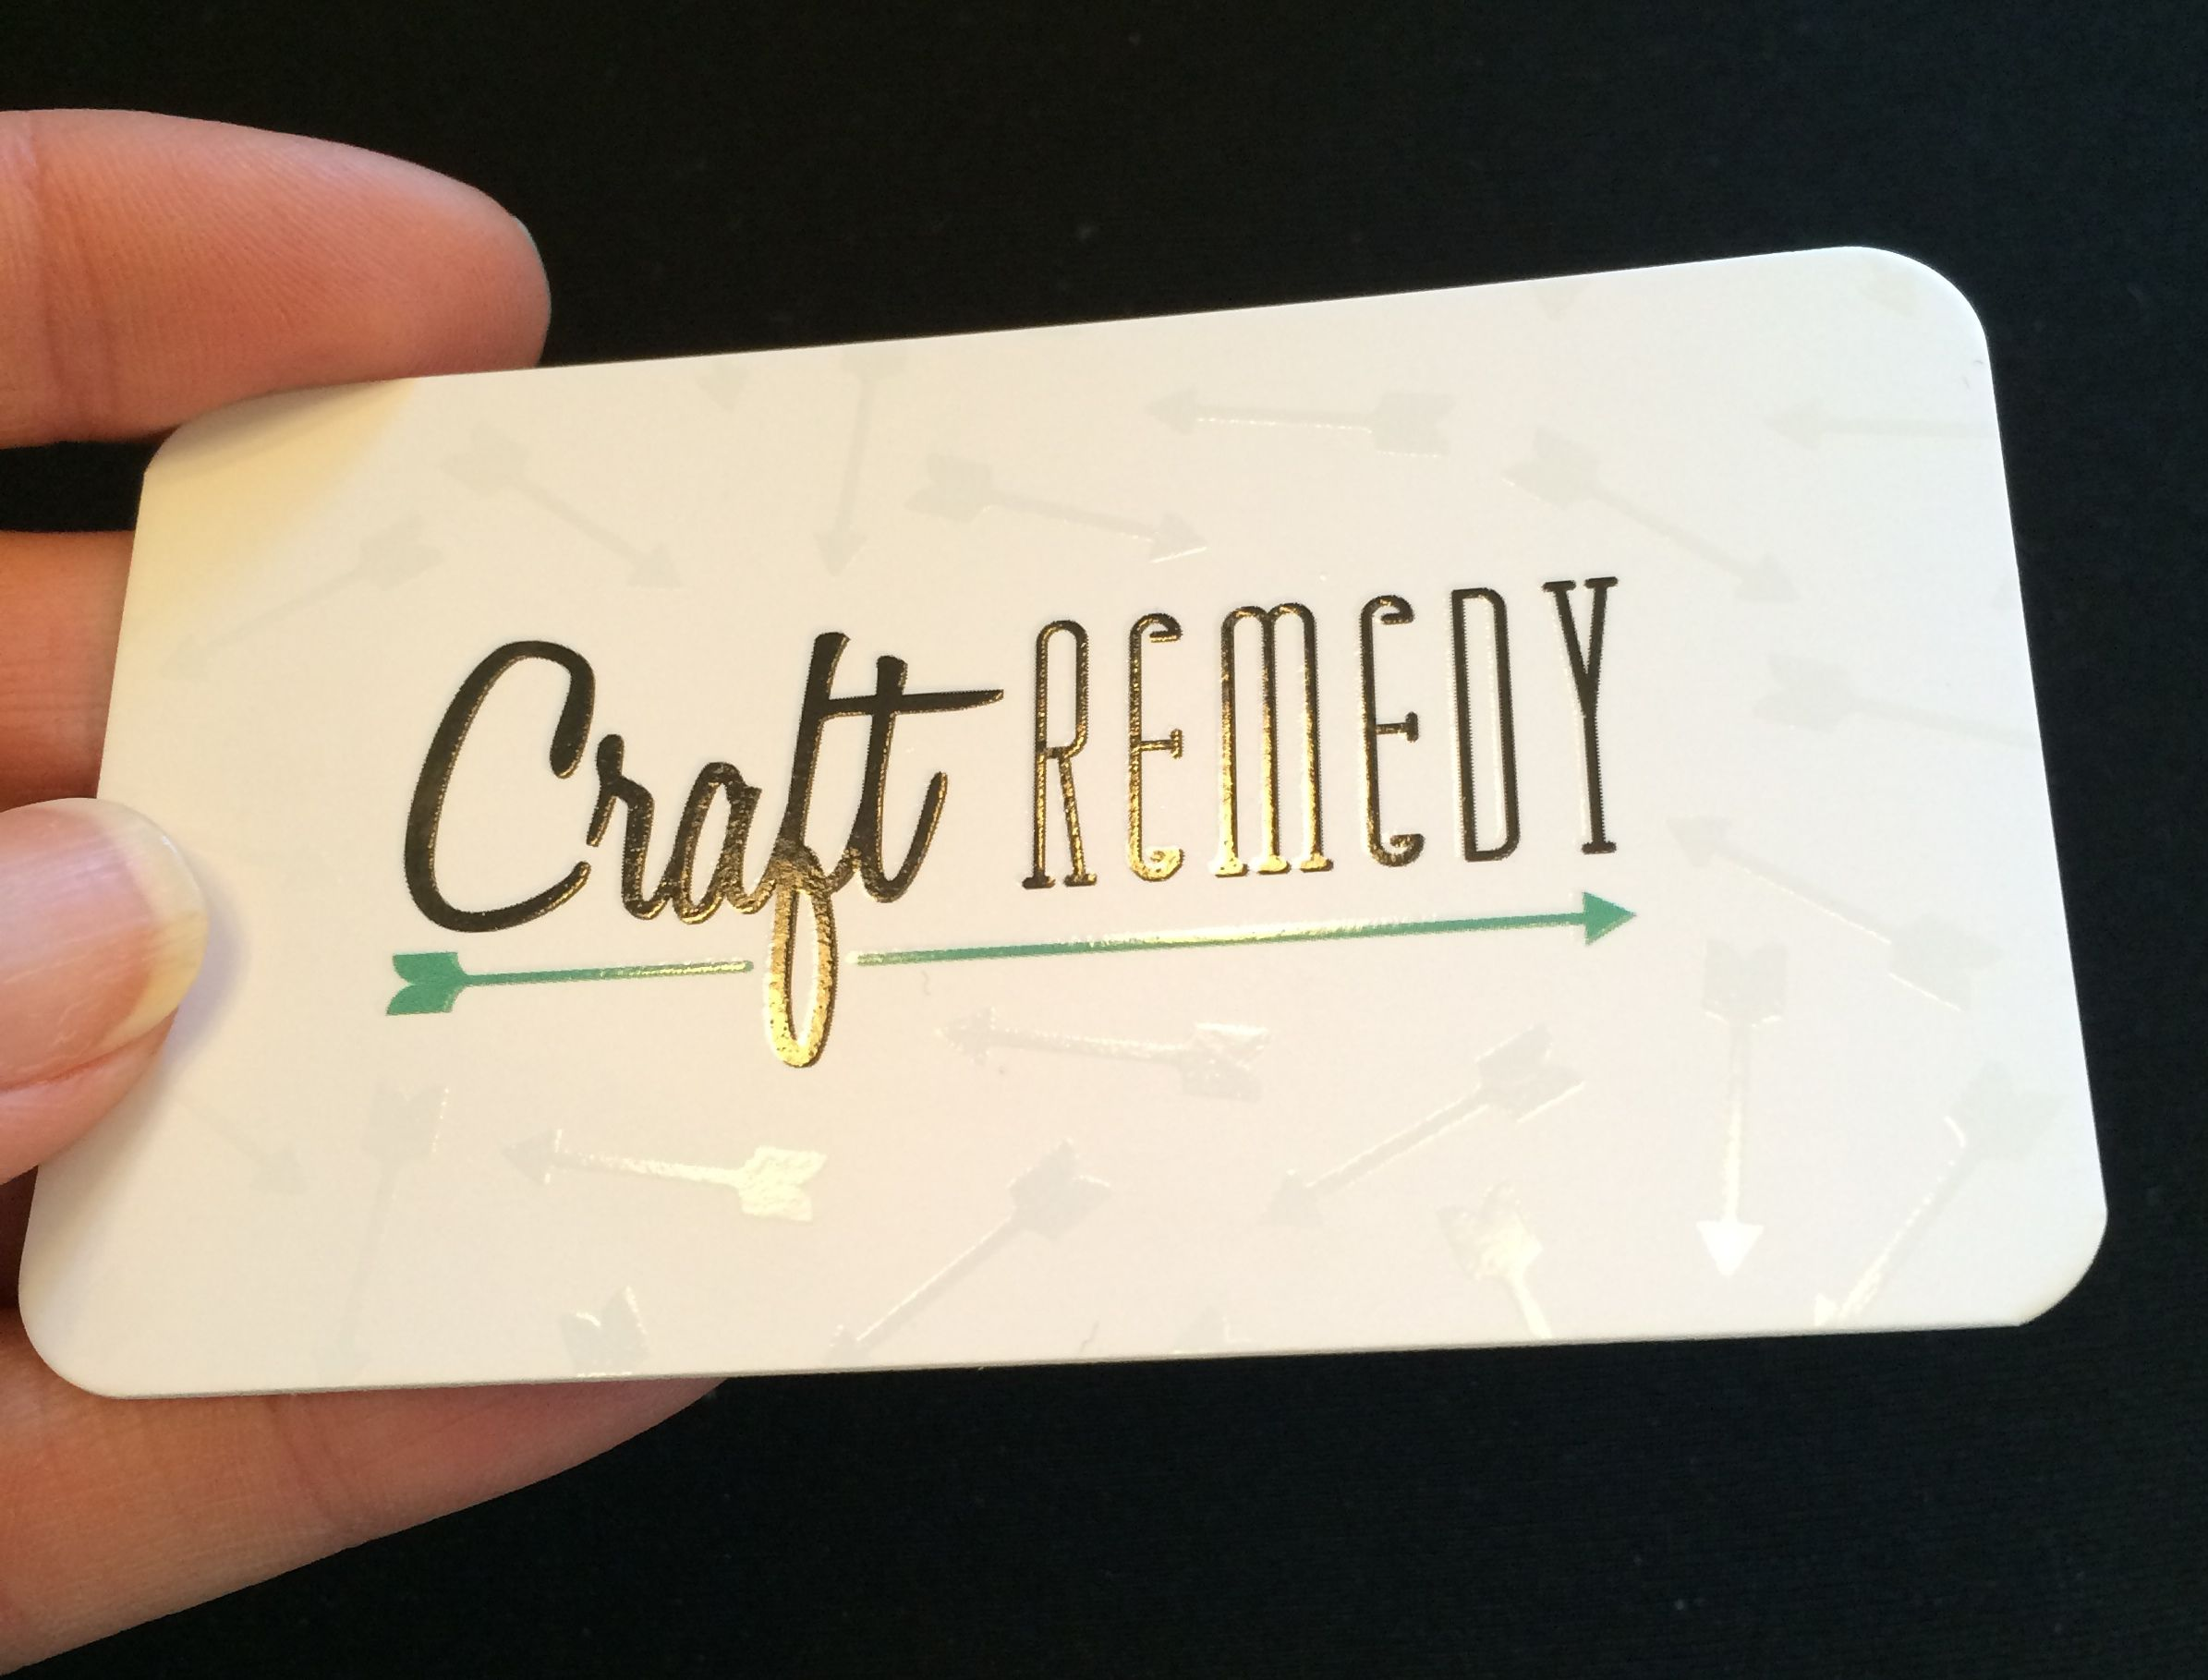 Business Cards are Here | Overnight prints, Business cards and Business